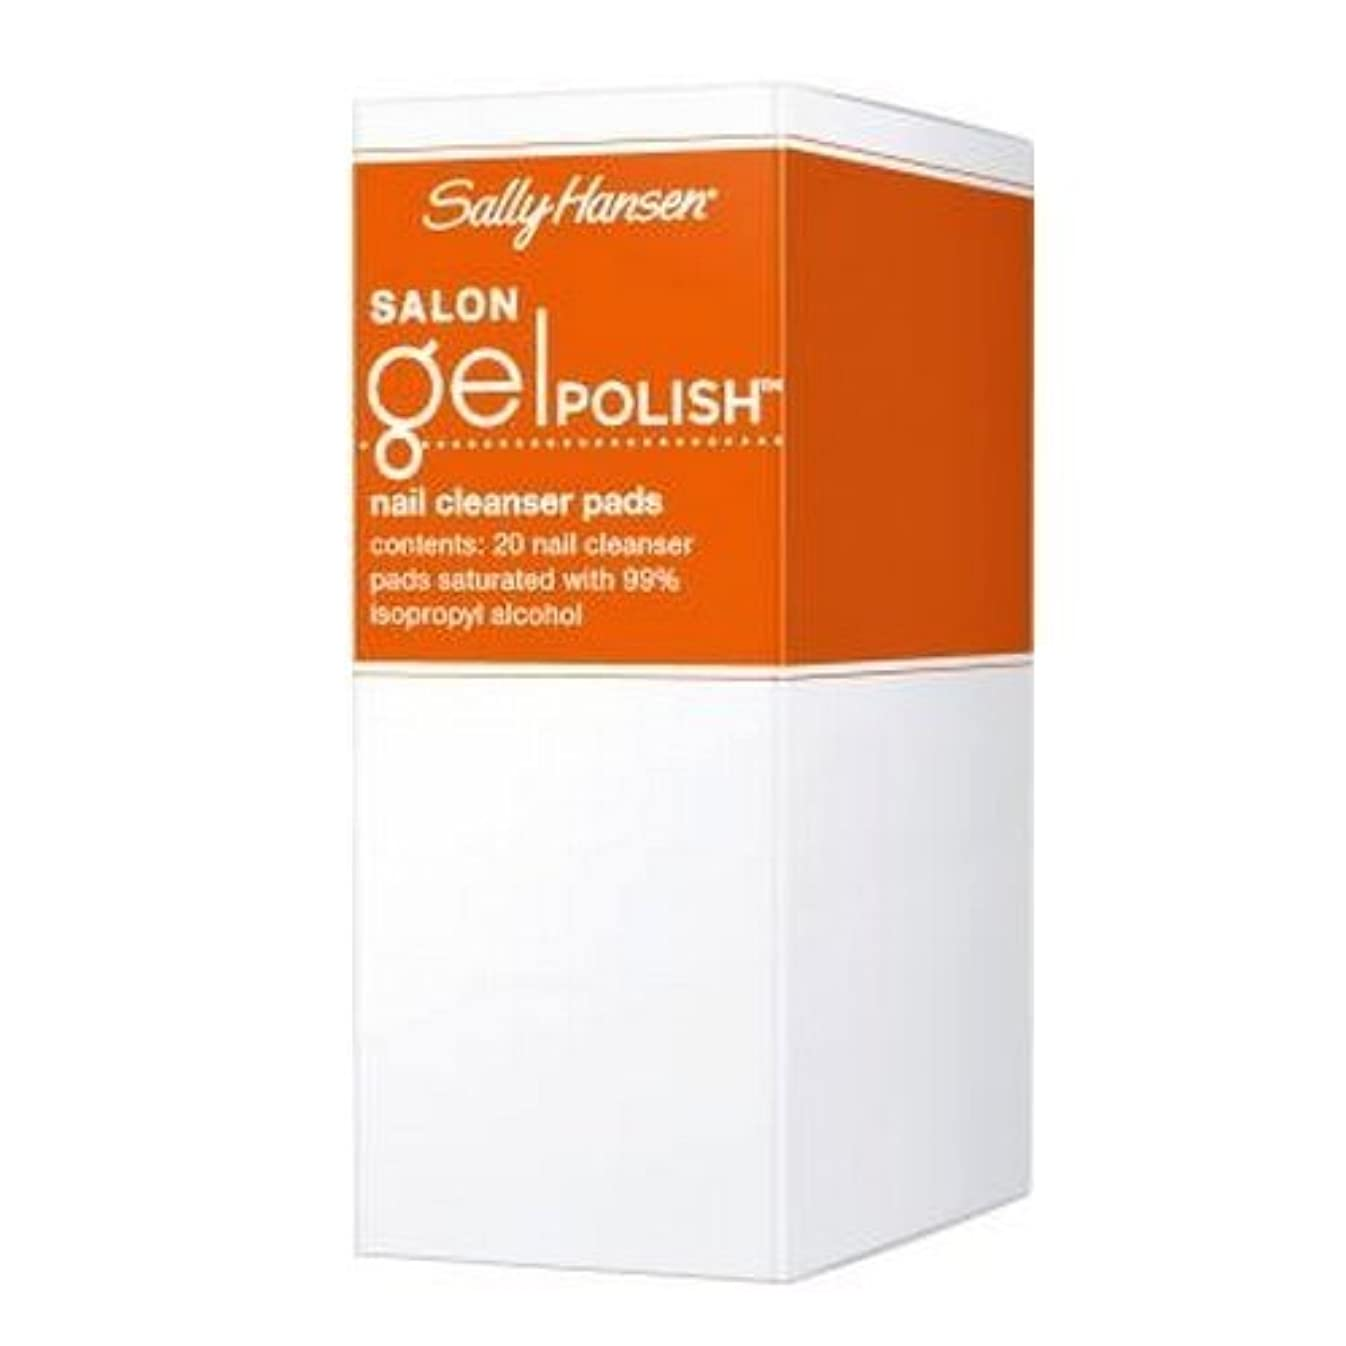 ファンブル過敏な共和国(3 Pack) SALLY HANSEN Salon Gel Polish Nail Cleanser Pads - Gel Polish Cleanser Pads (並行輸入品)